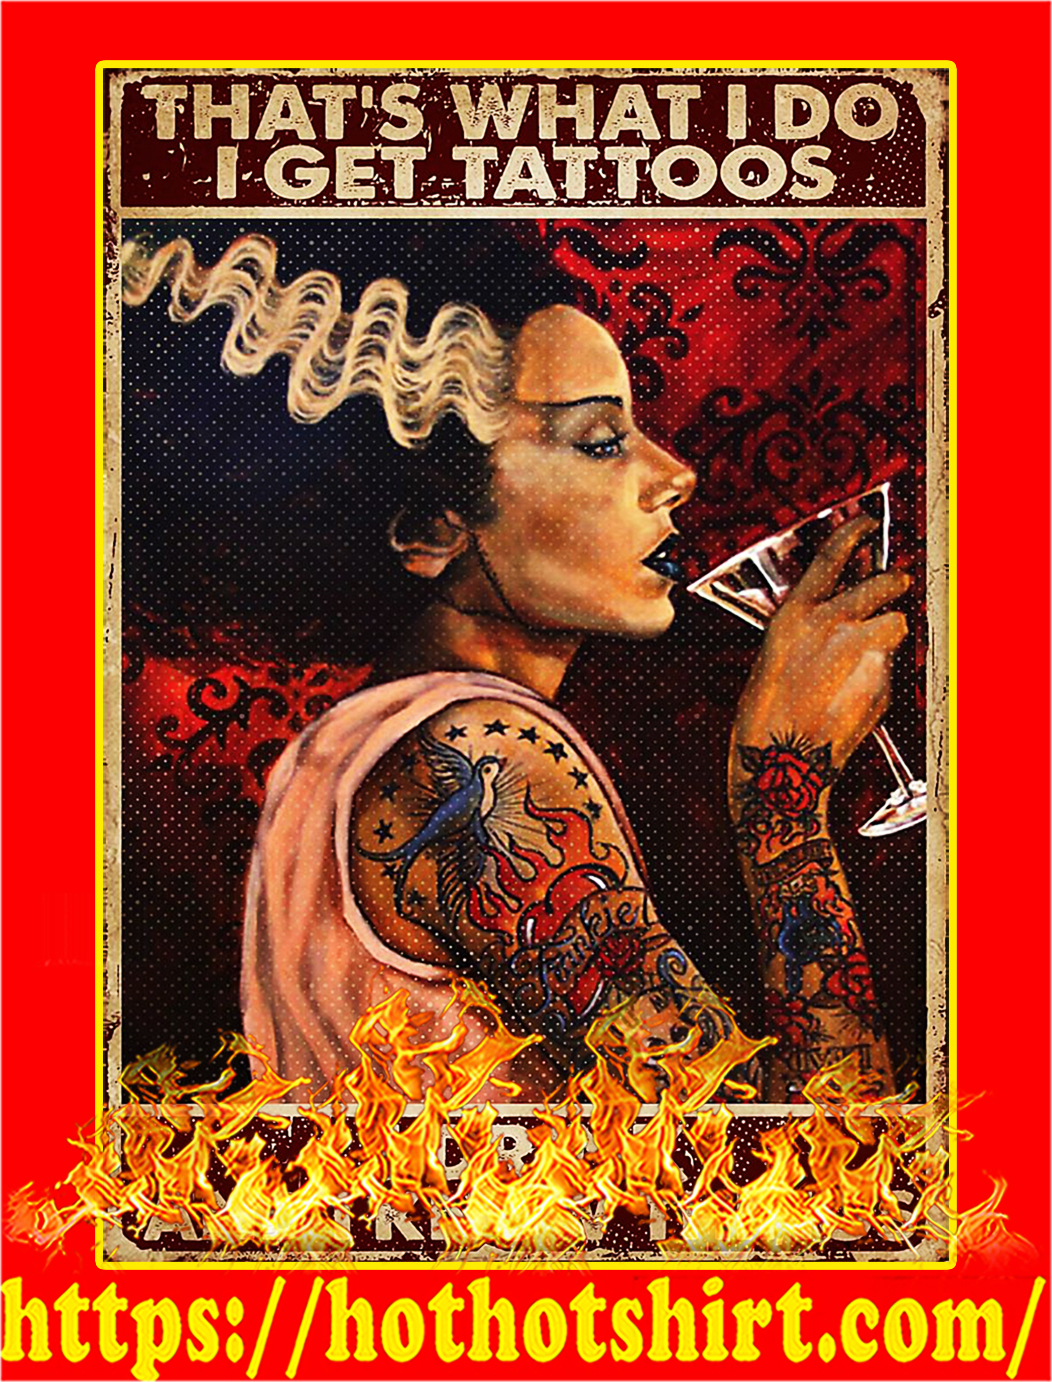 Tattoo woman that's what I do I get tattoos poster - A3